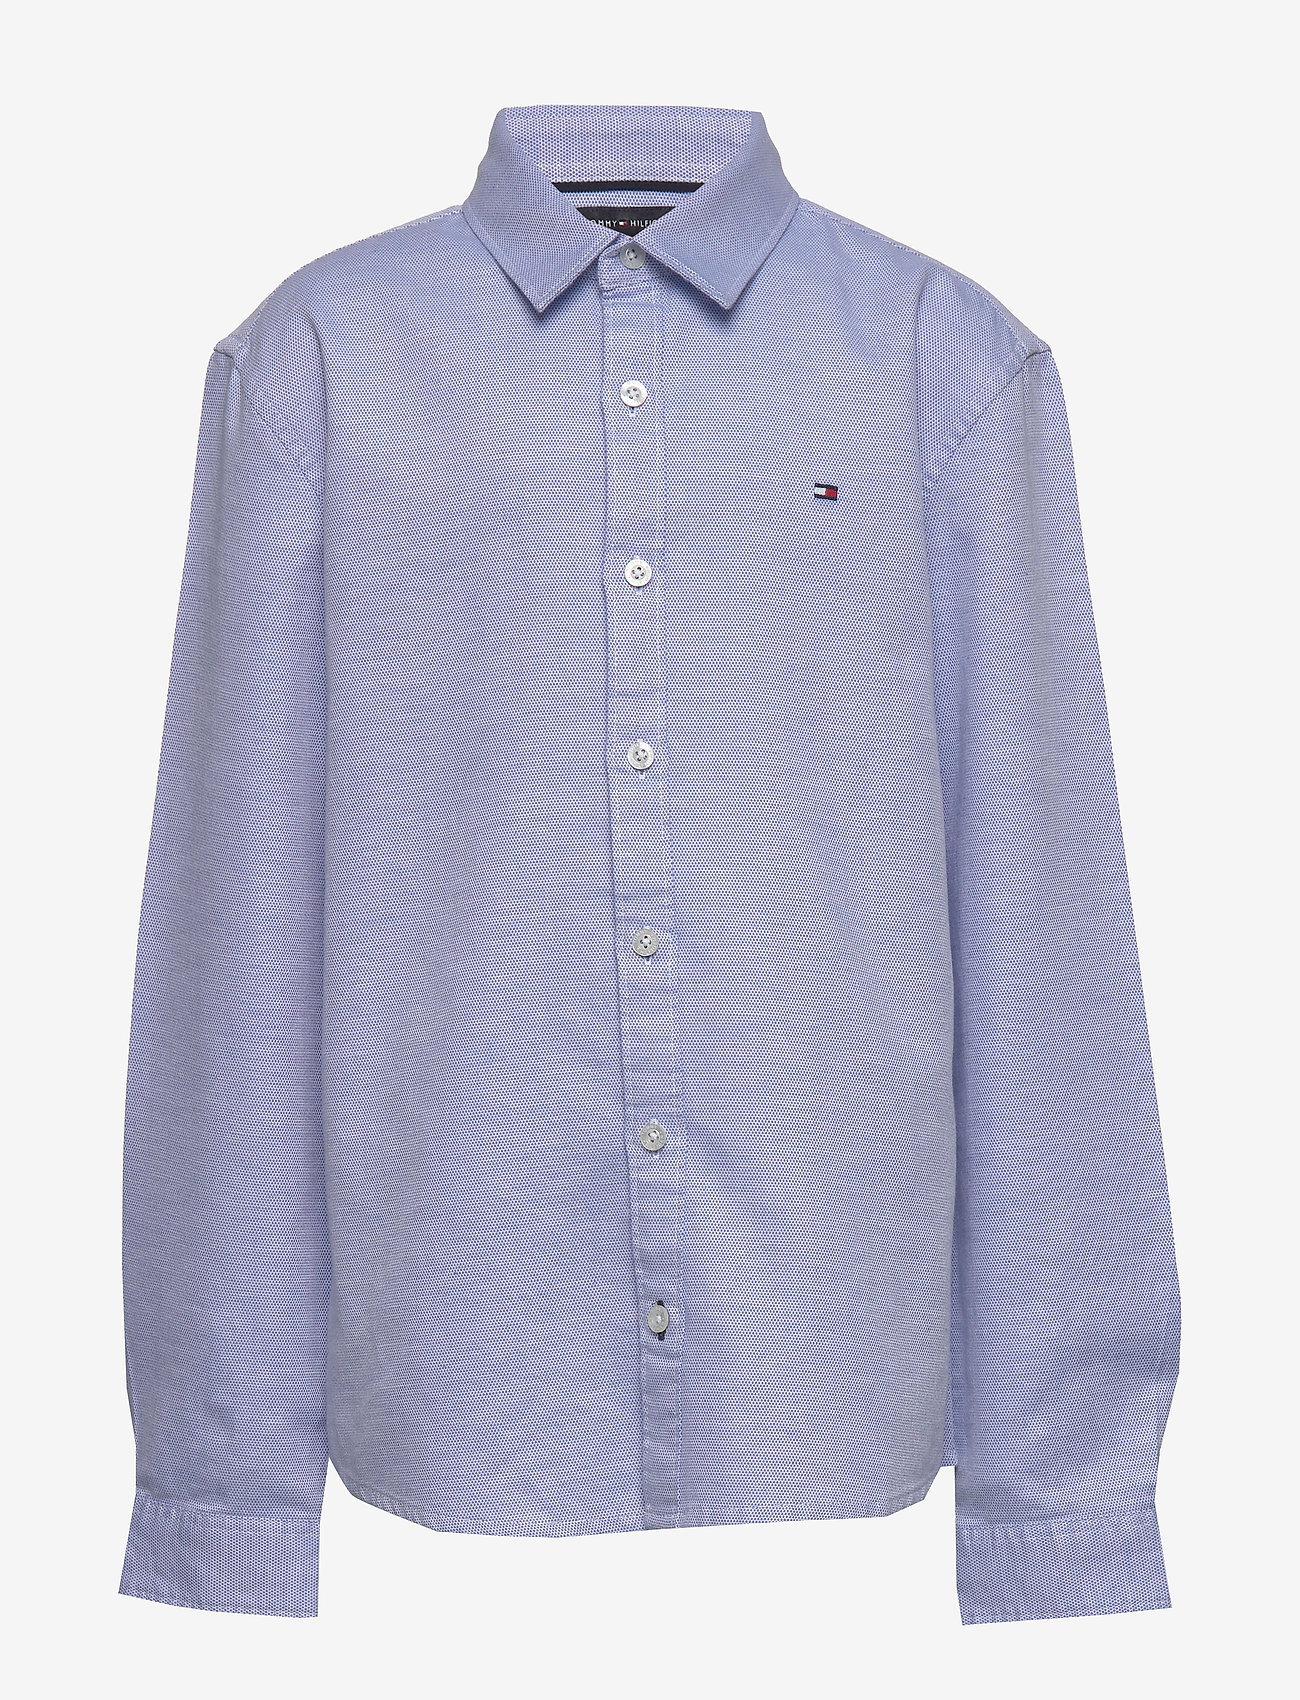 Tommy Hilfiger - STRUCTURED LINEN SHI - shirts - regatta/white